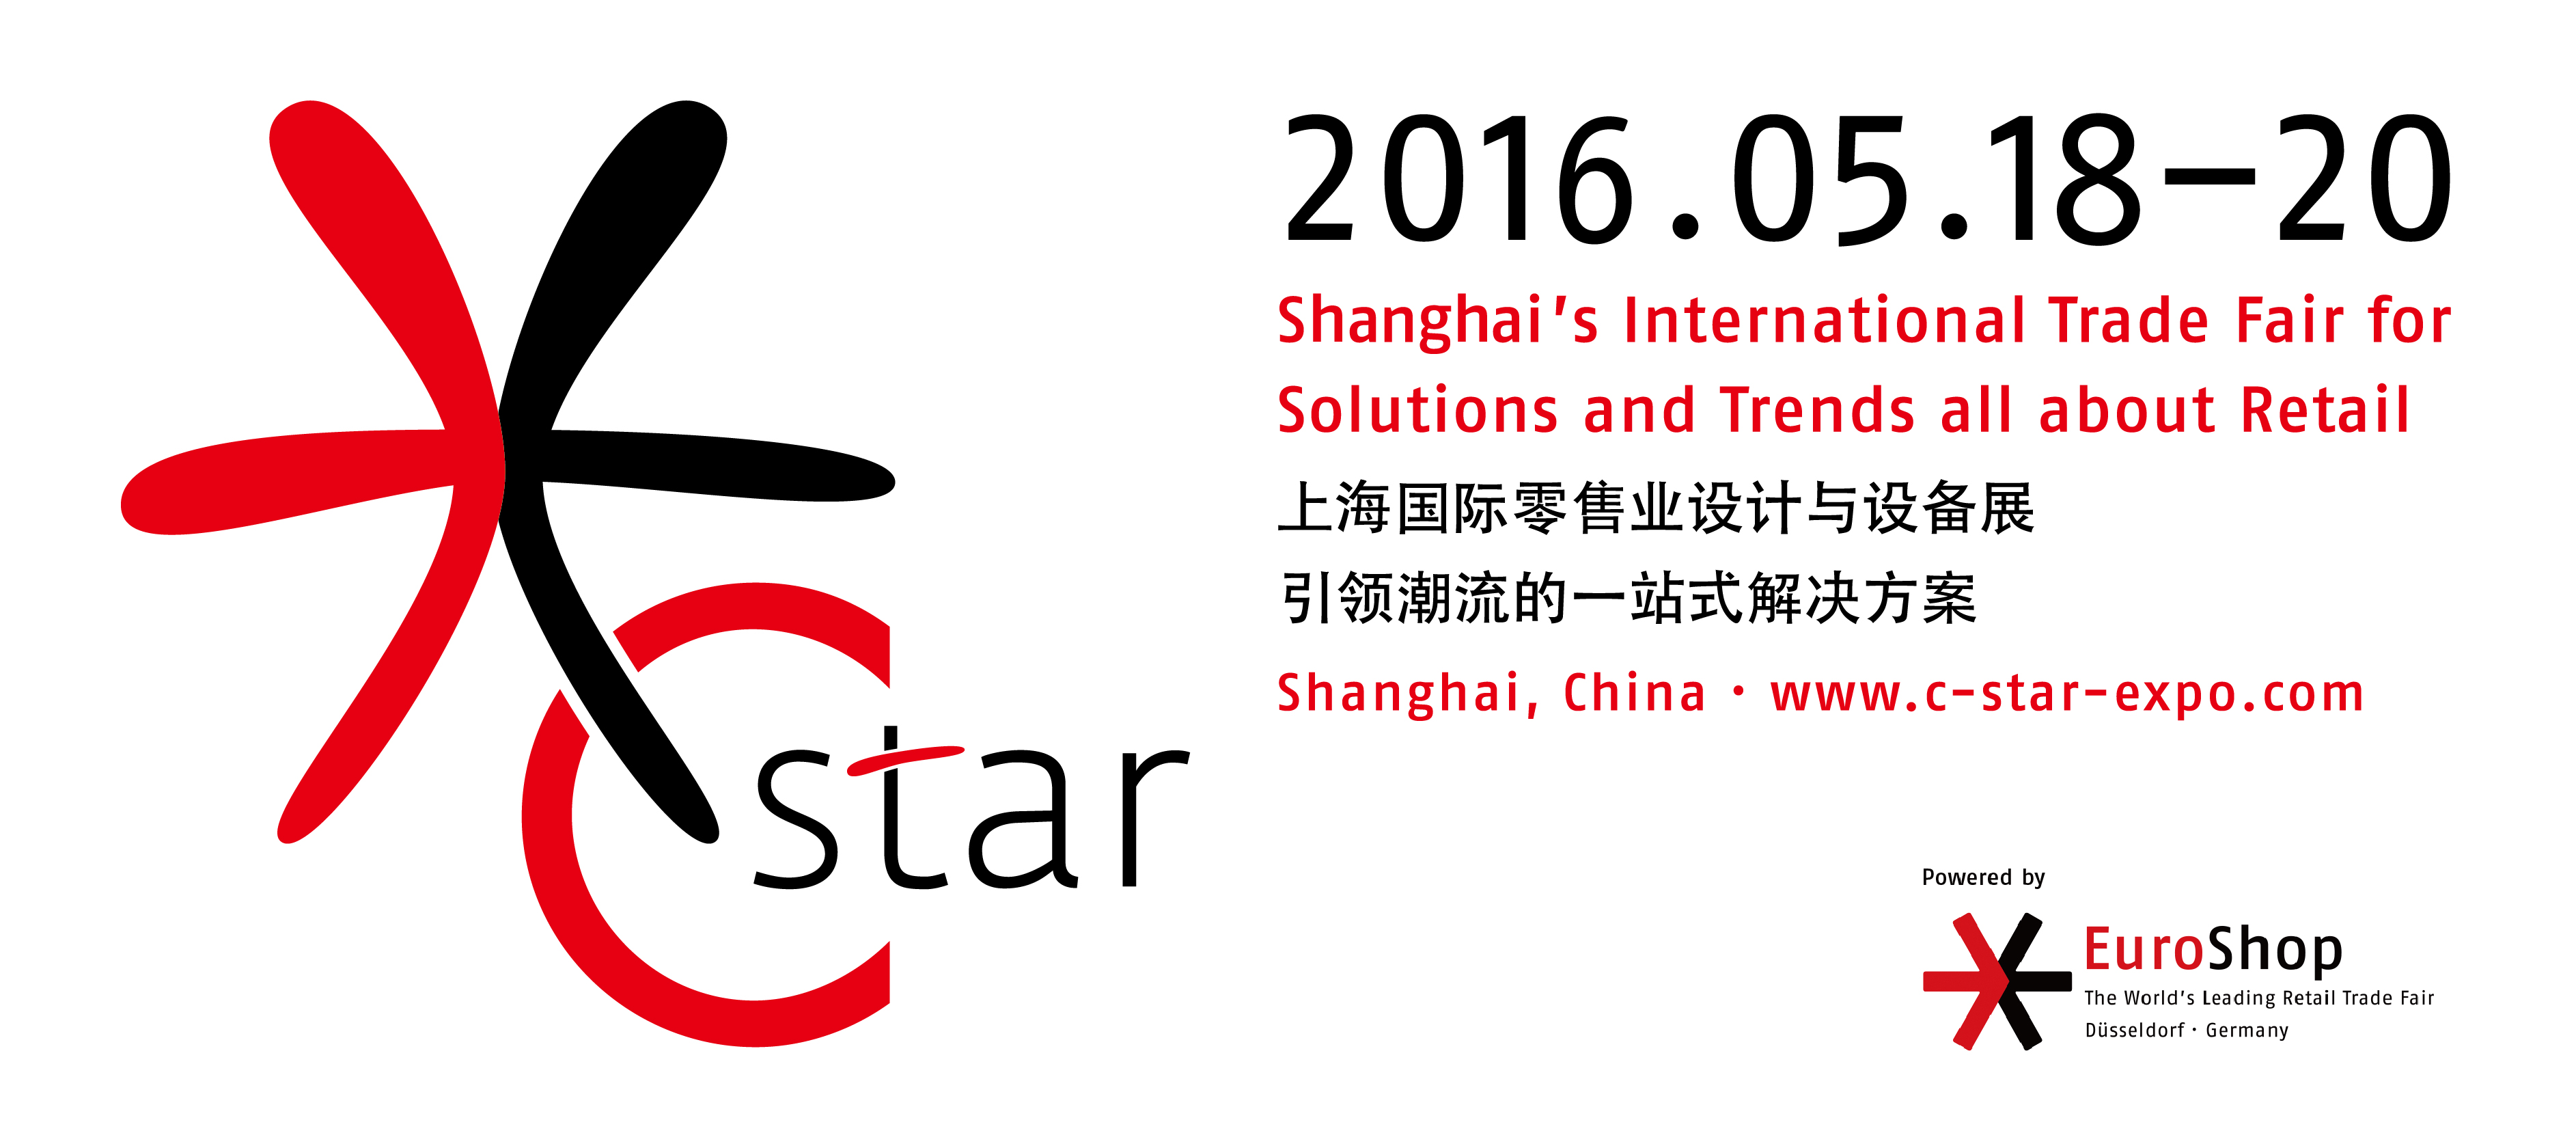 C-star: China's Most International Retail Trade Fair is on the Path towards Solid Expansion